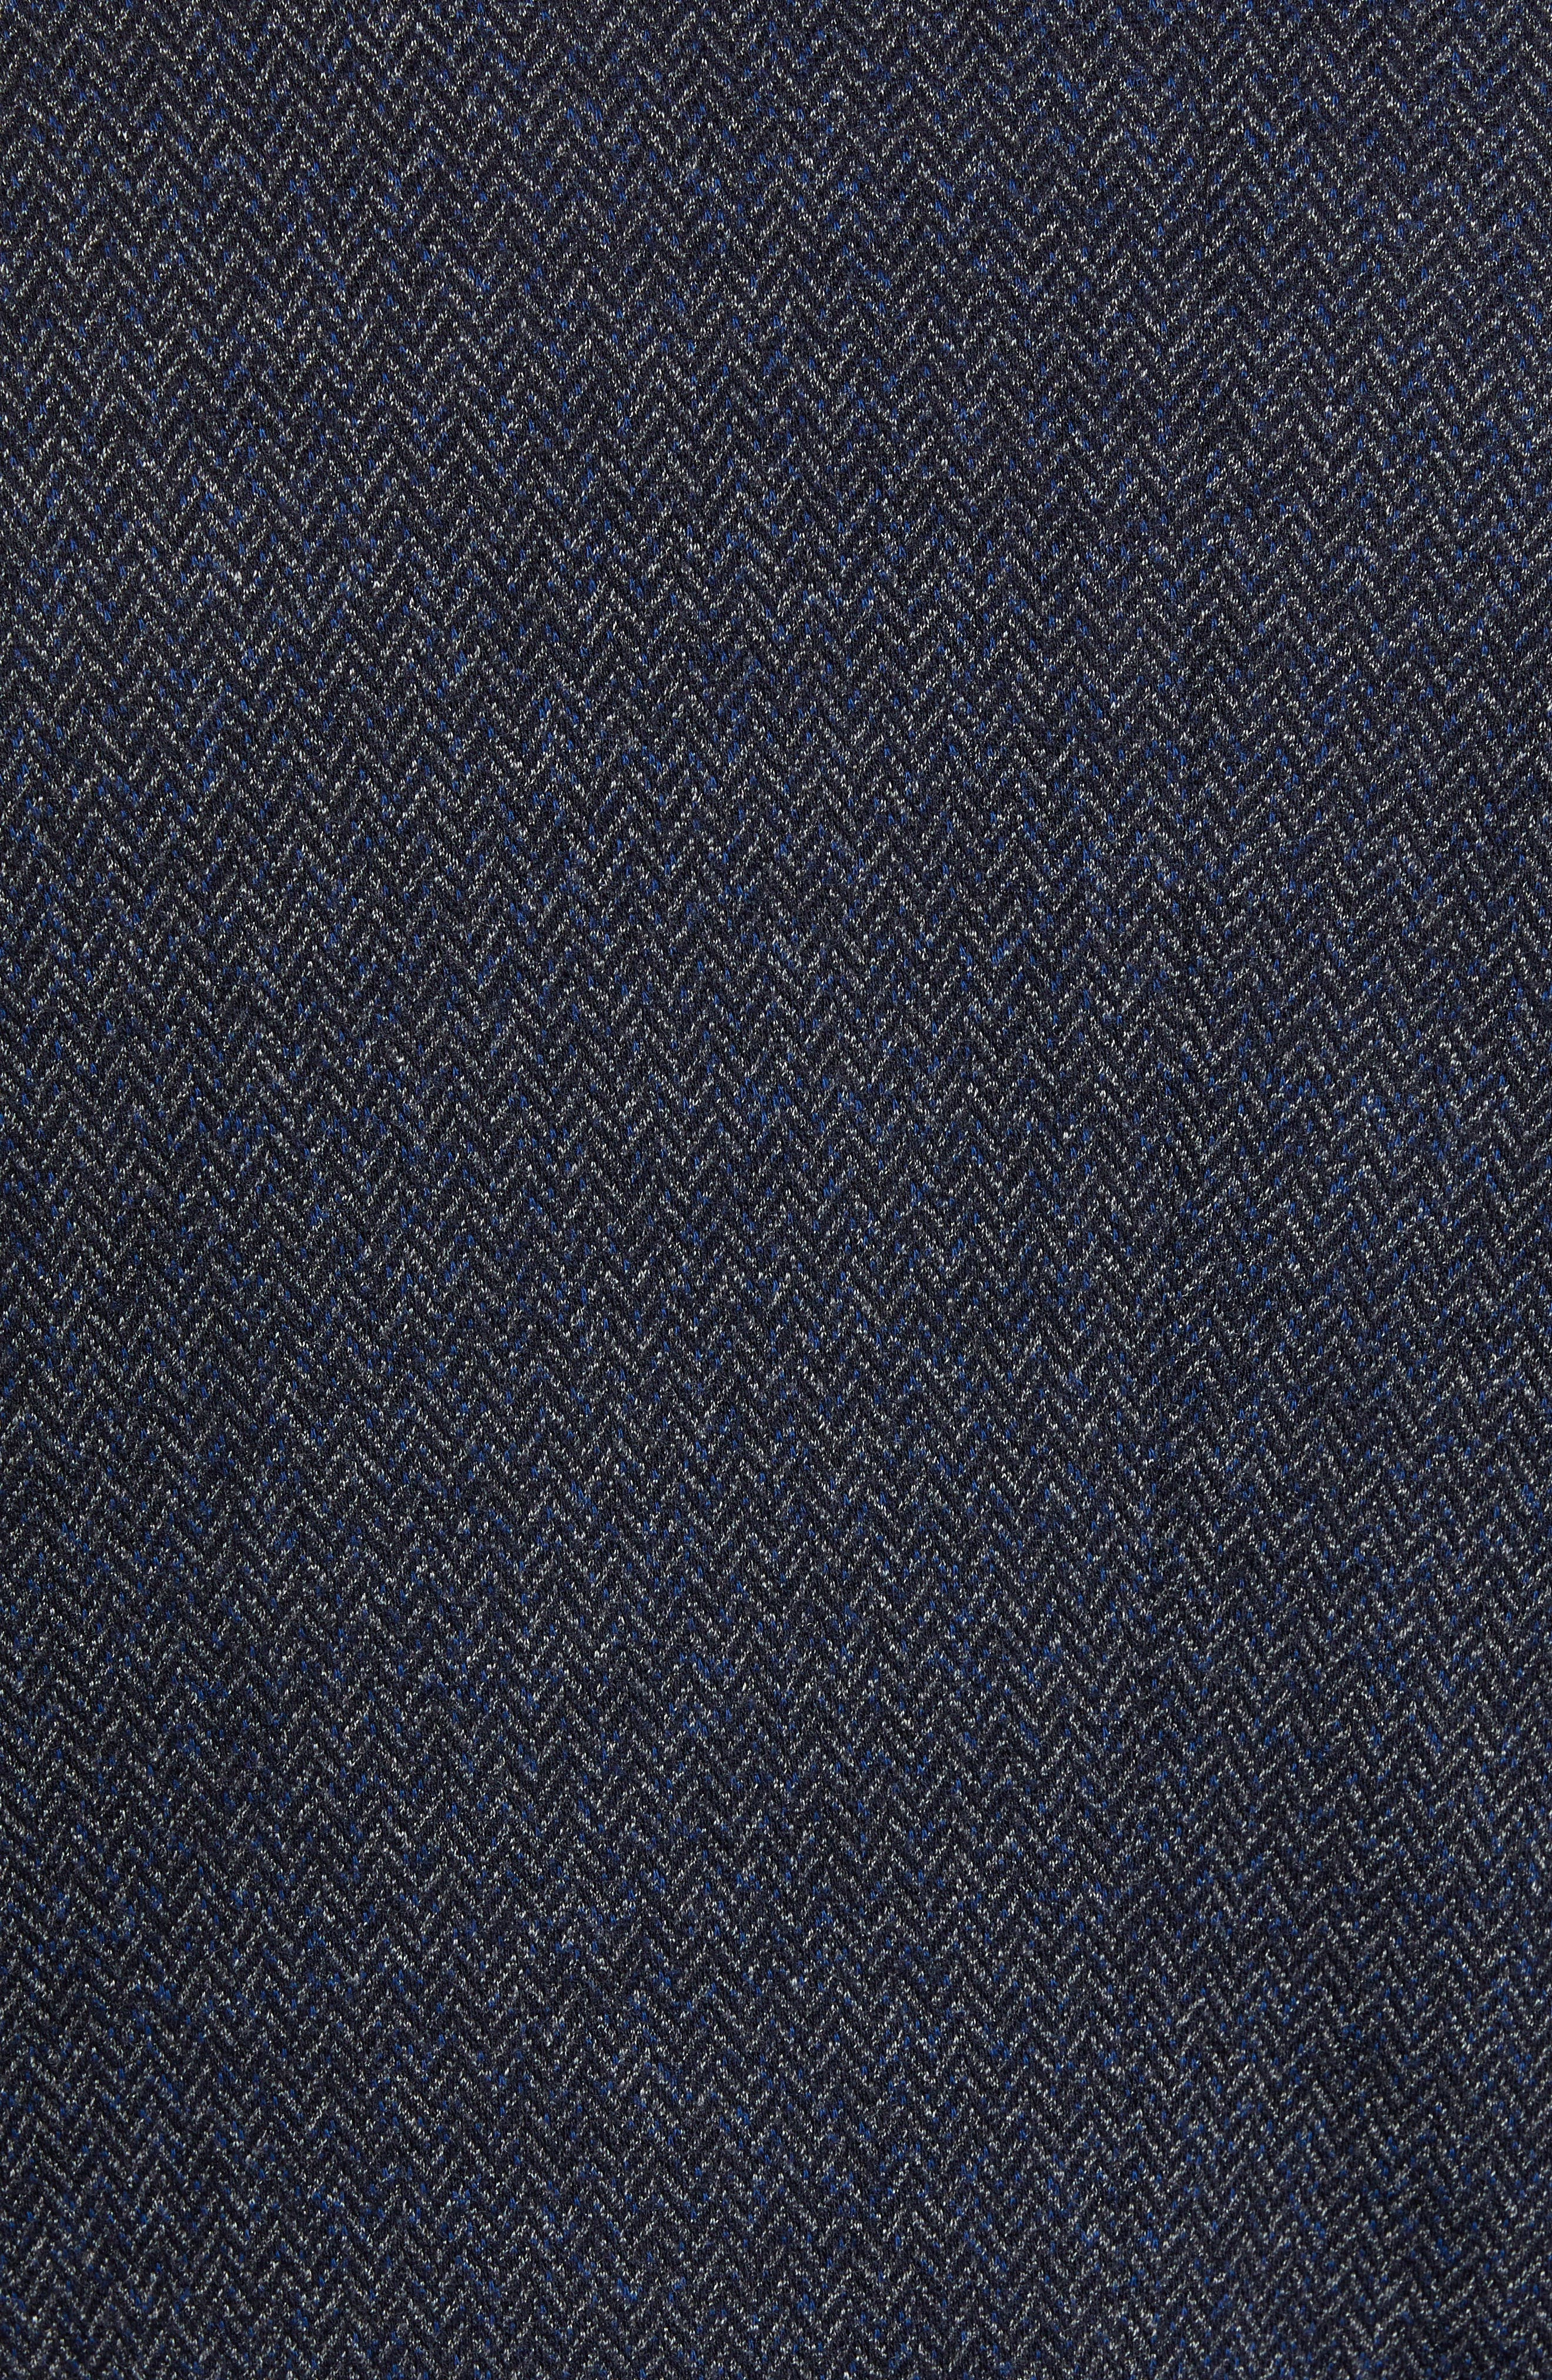 Cotton & Wool Blazer,                             Alternate thumbnail 6, color,                             NIGHT BLUE